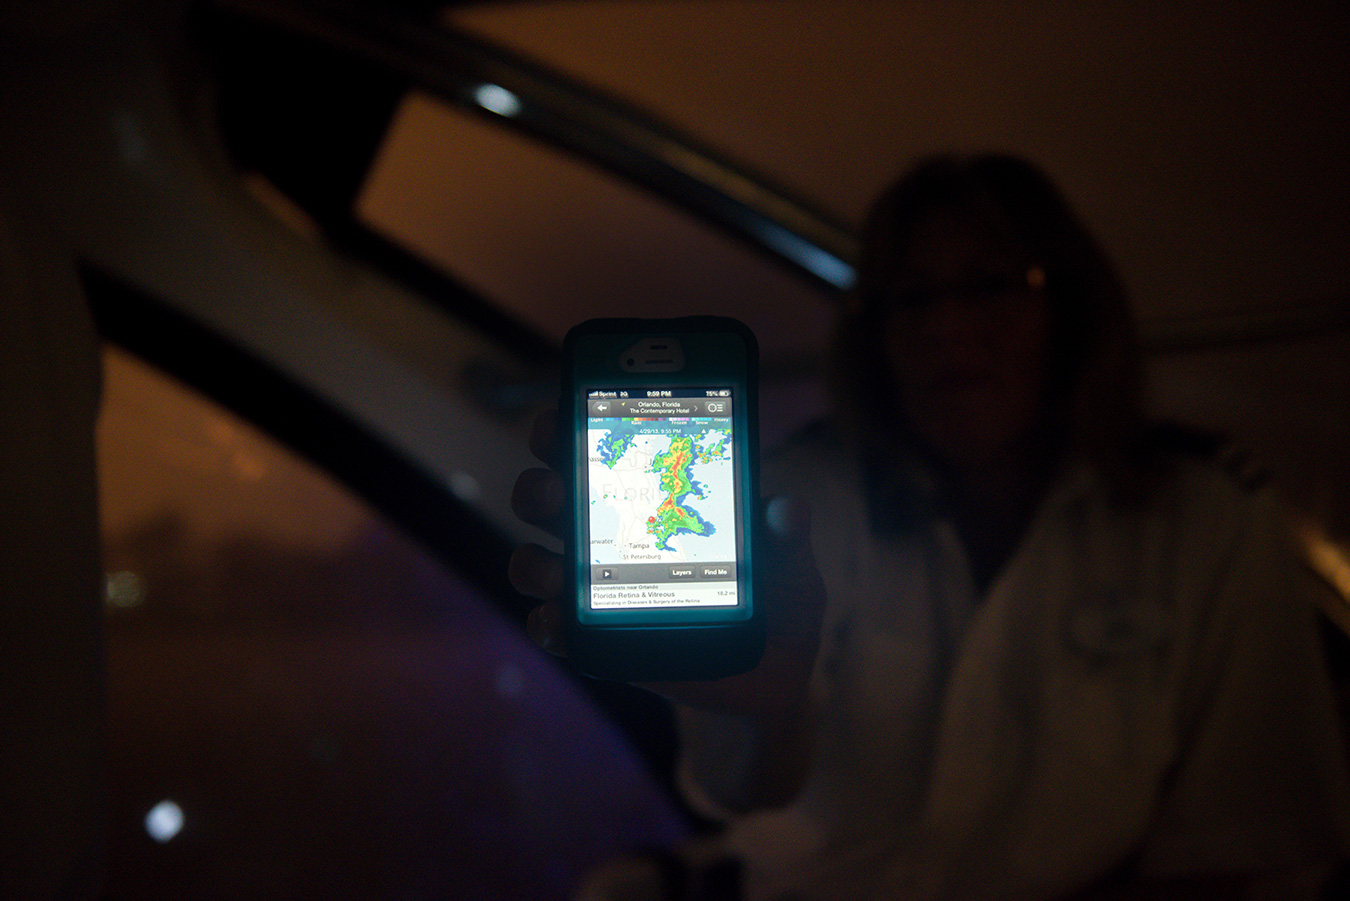 Kris showing me the live radar